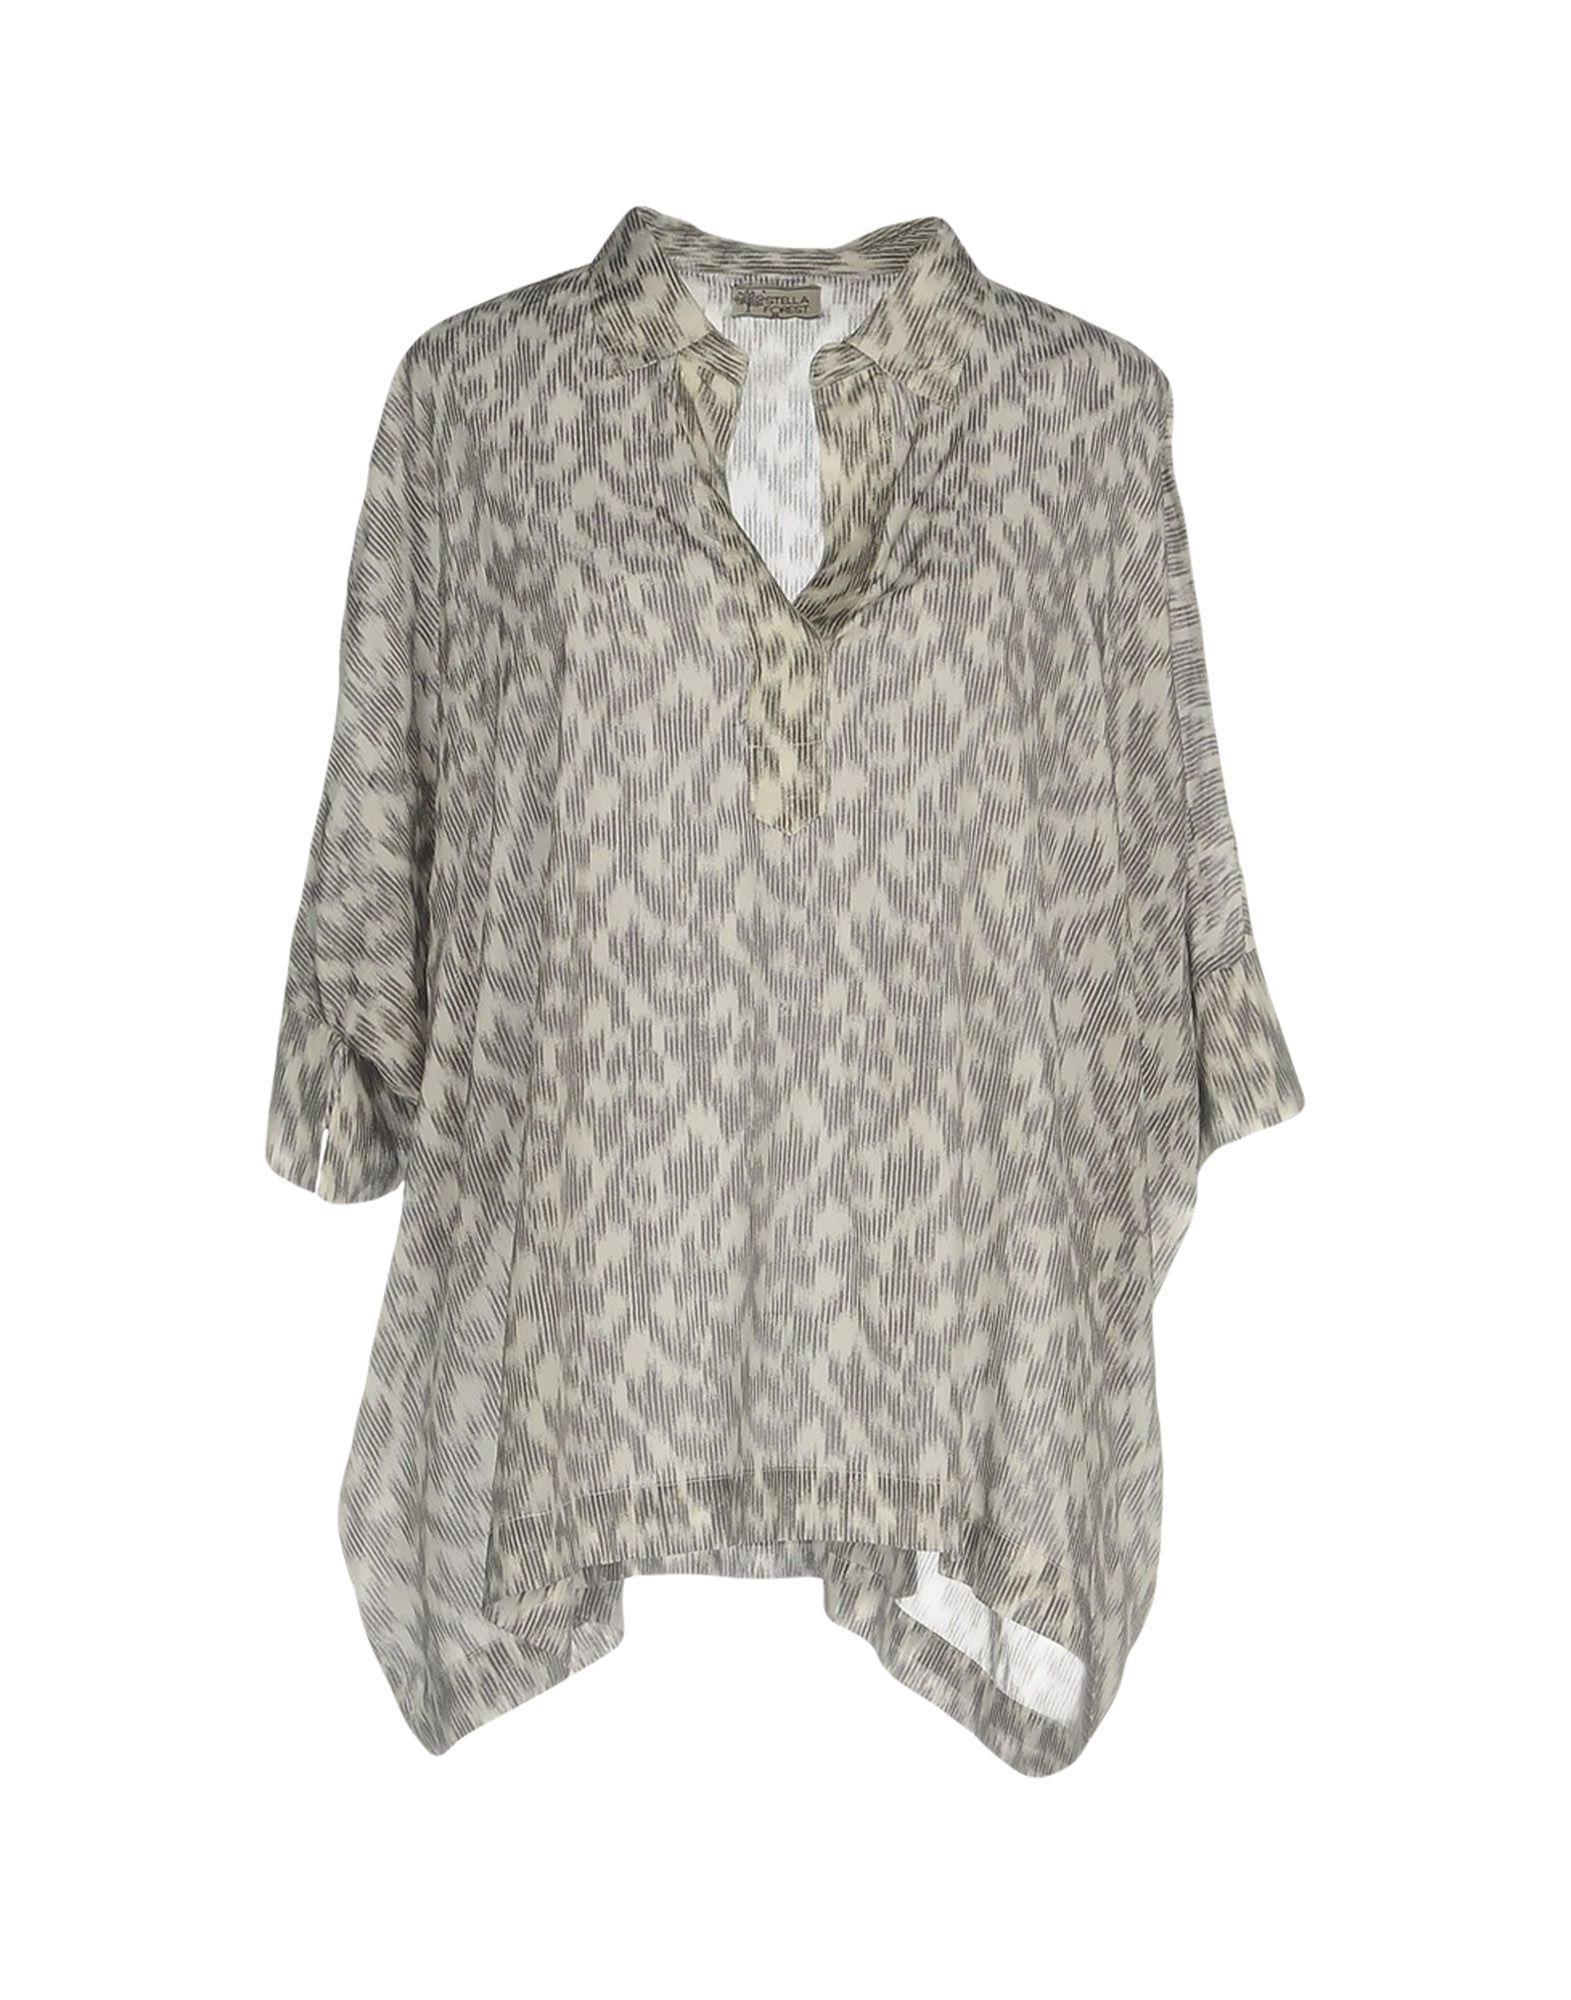 STELLA FOREST Blouse in Grey